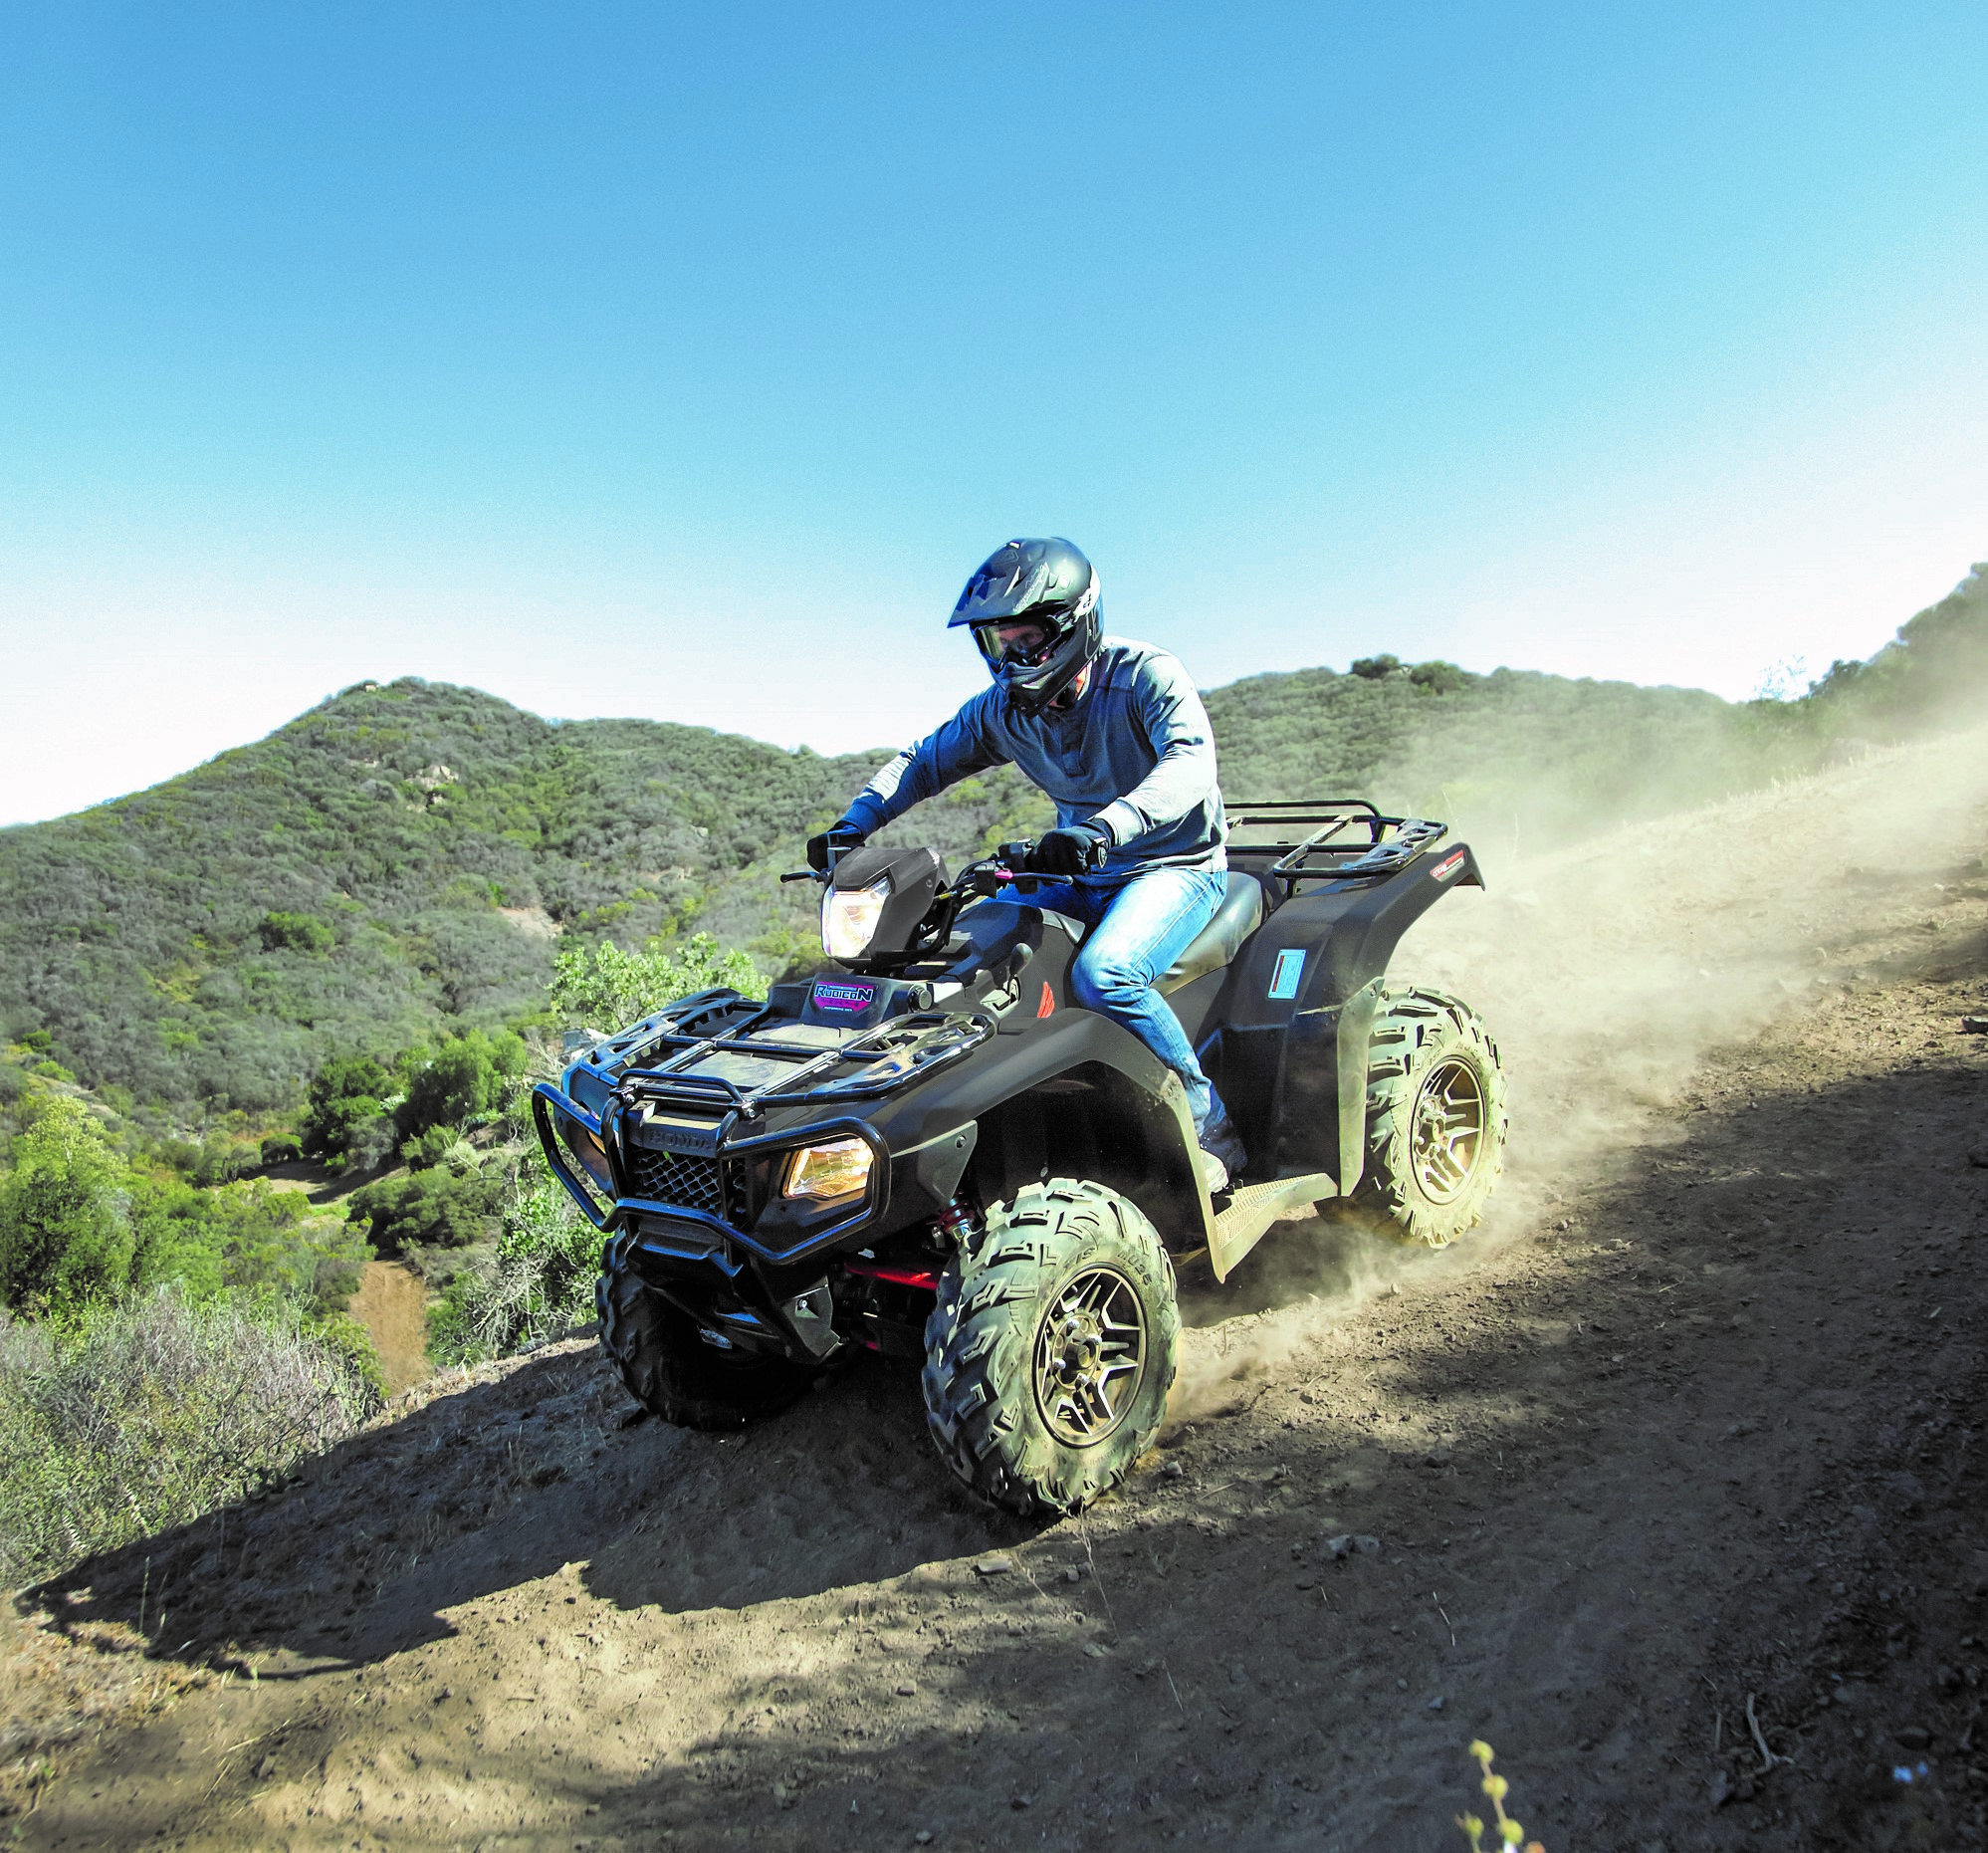 Honda ATV on a dirt trail.